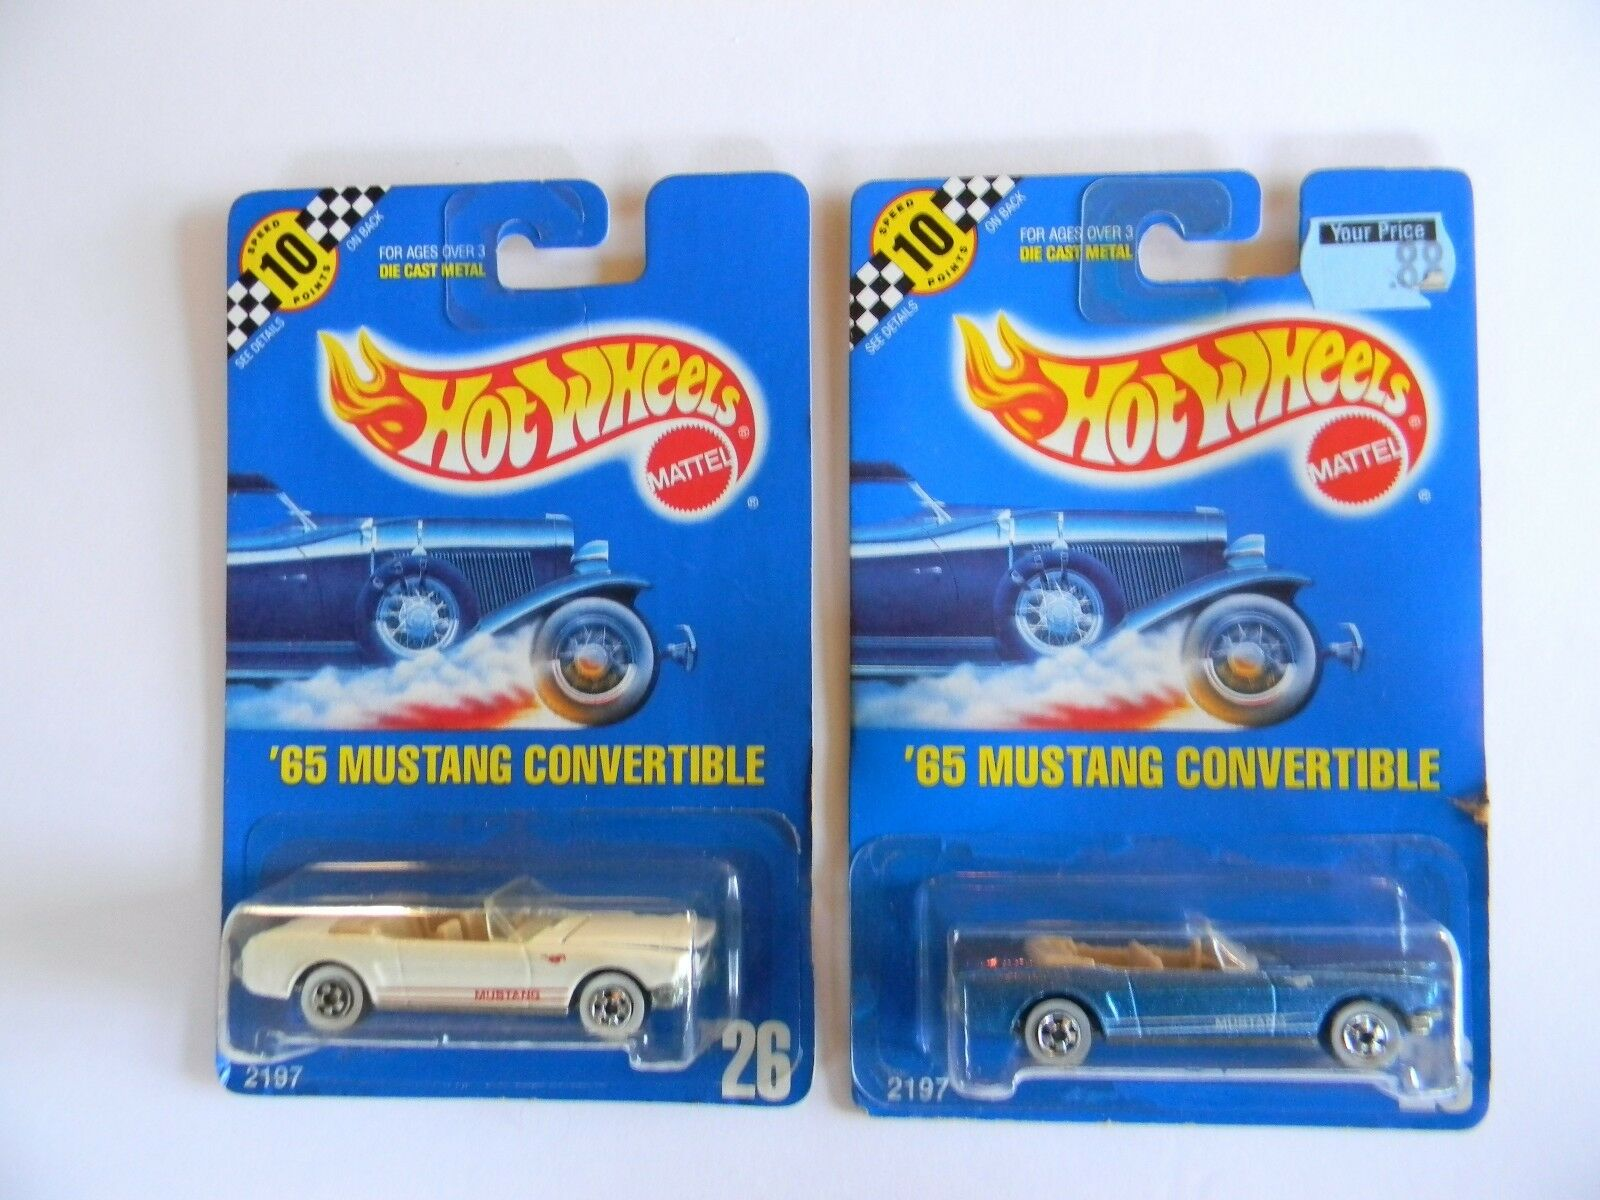 PAIR-RARE- '65 MUSTANG CONgreenIBLE- blueE CARD-HOT WHEELS-ORIGINAL-VHTFVARI.